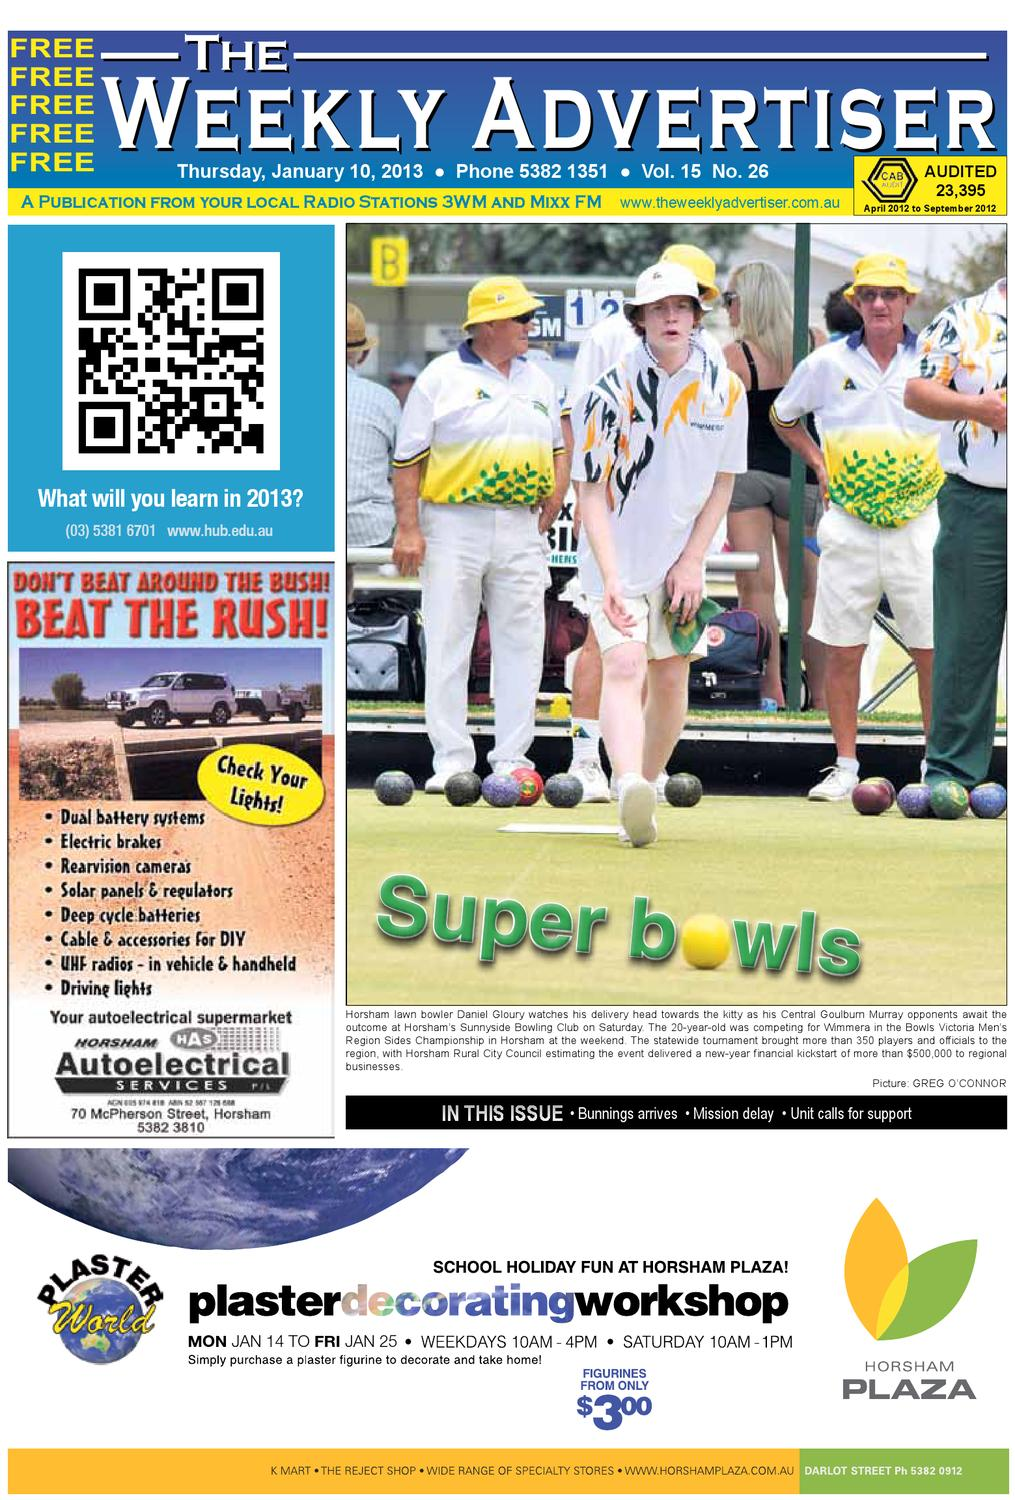 The Weekly Advertiser - Thursday, January 10, ...